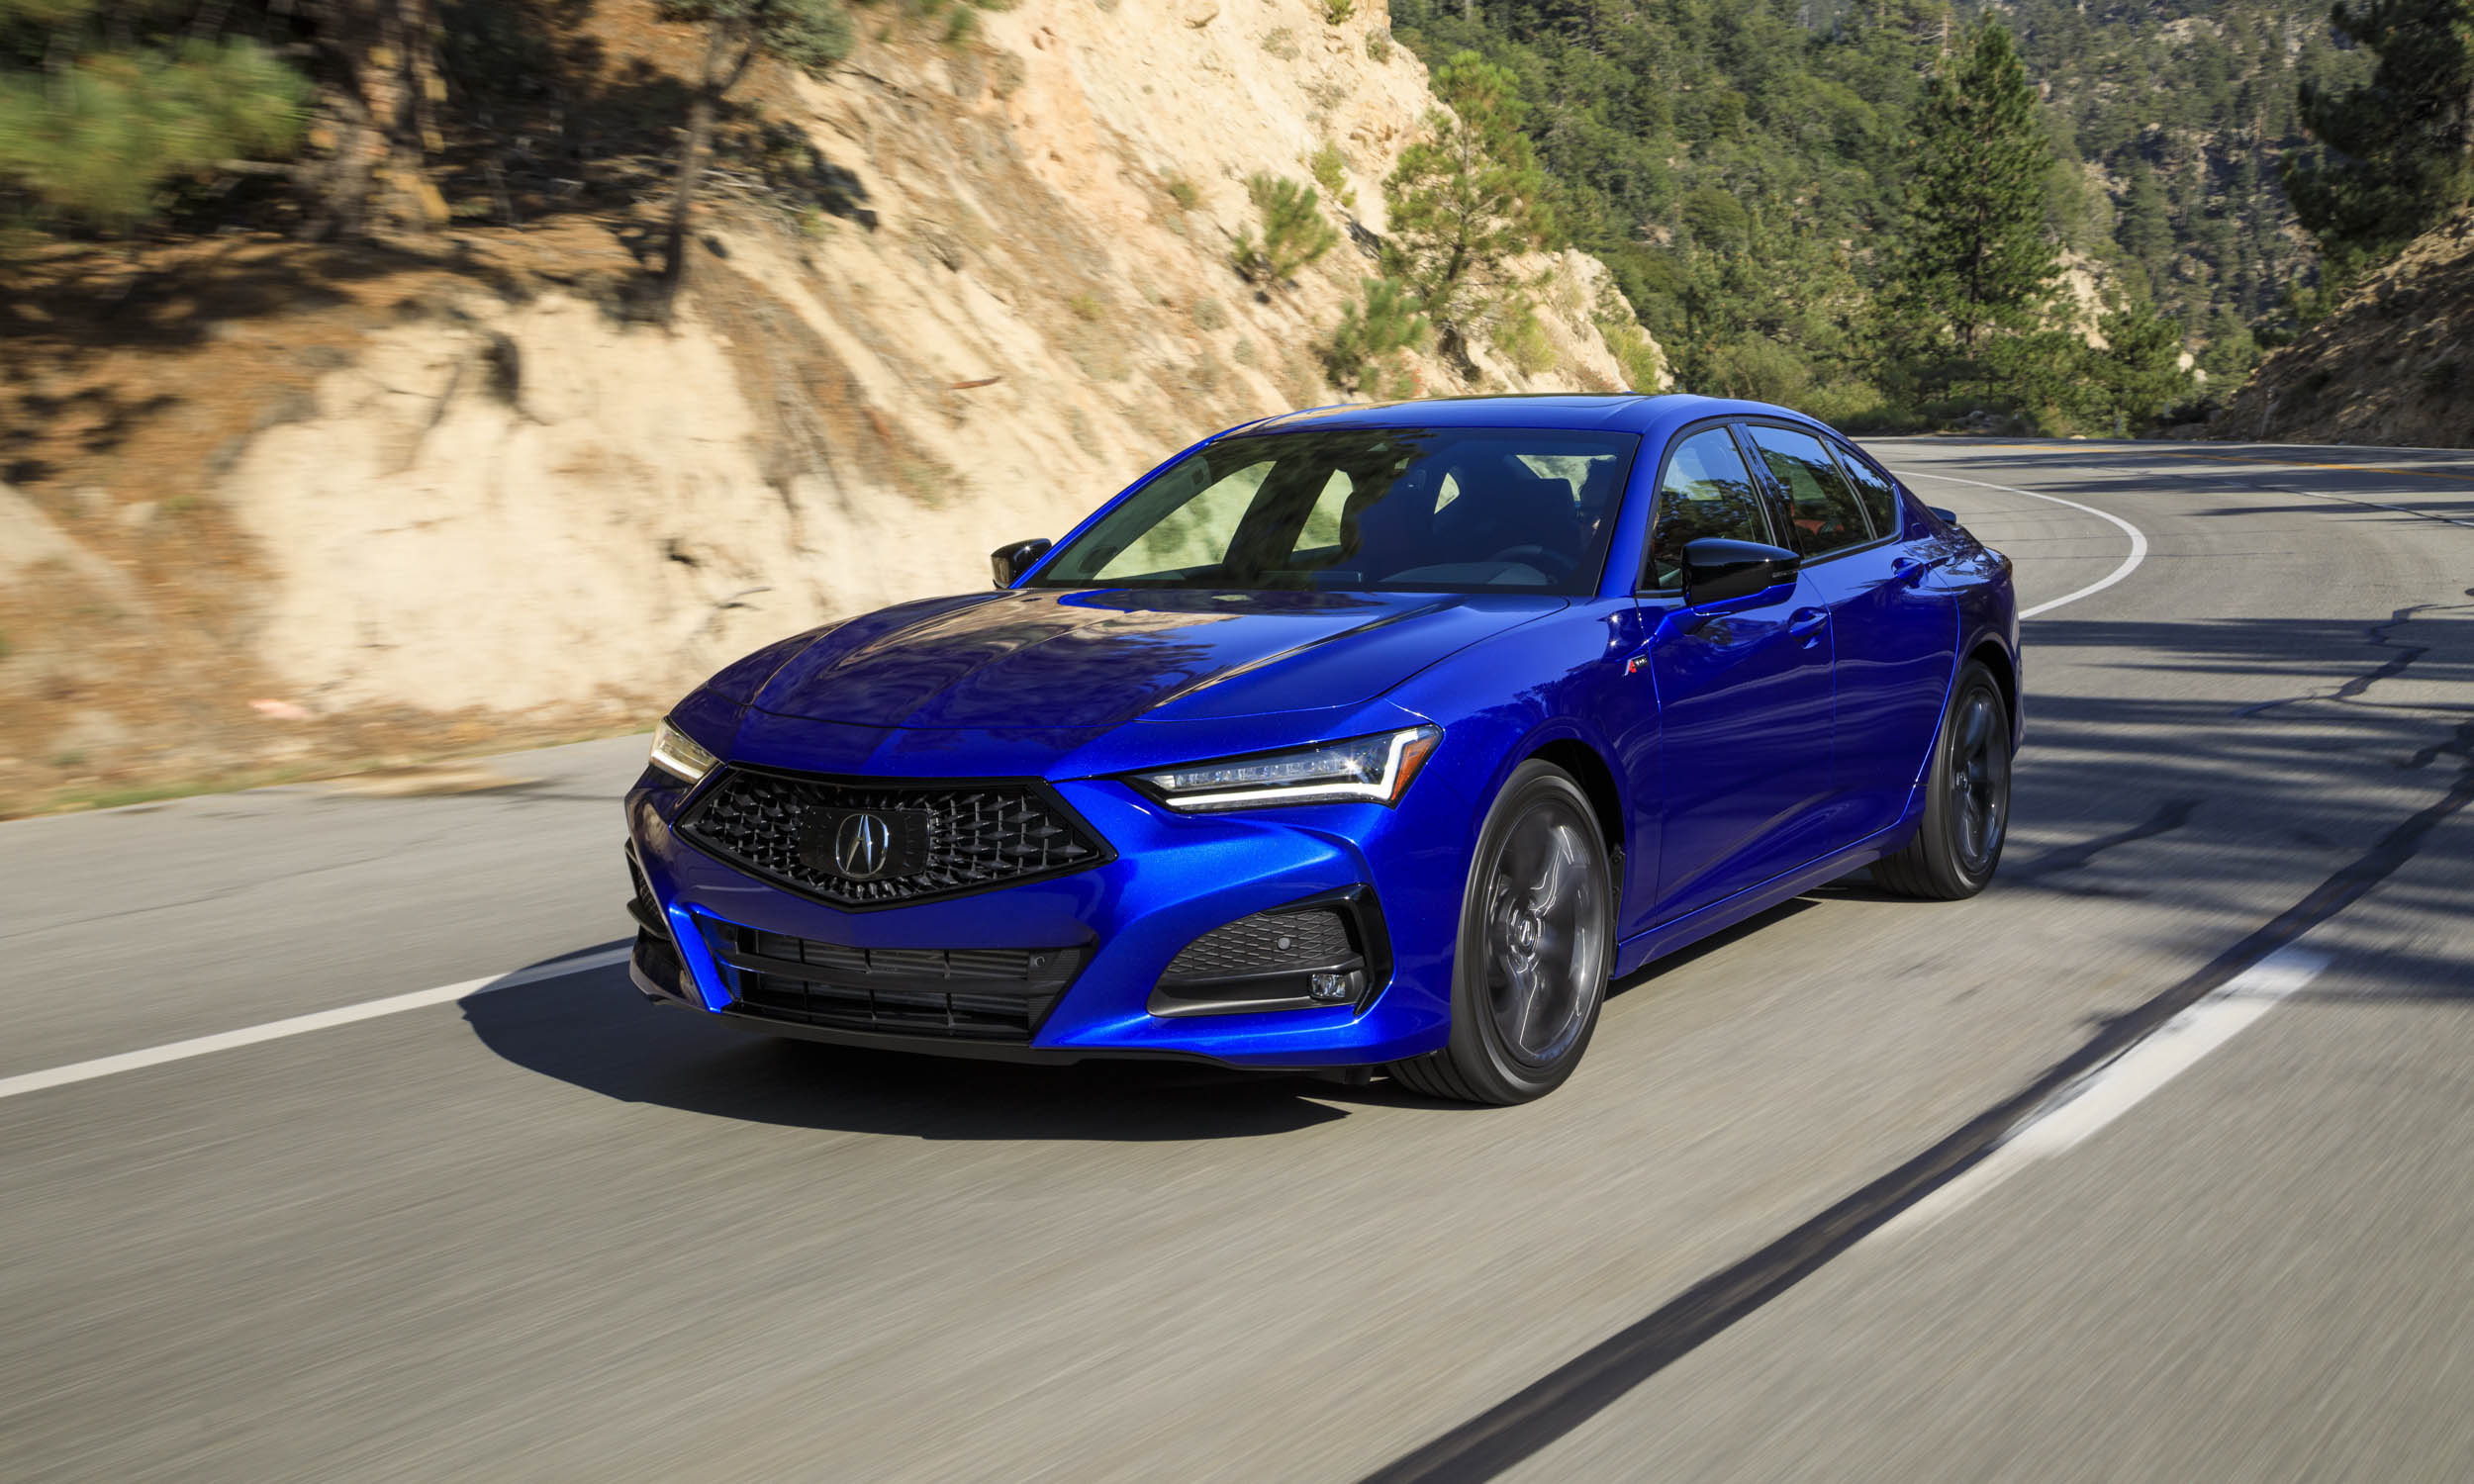 2021 Acura TLX: Review